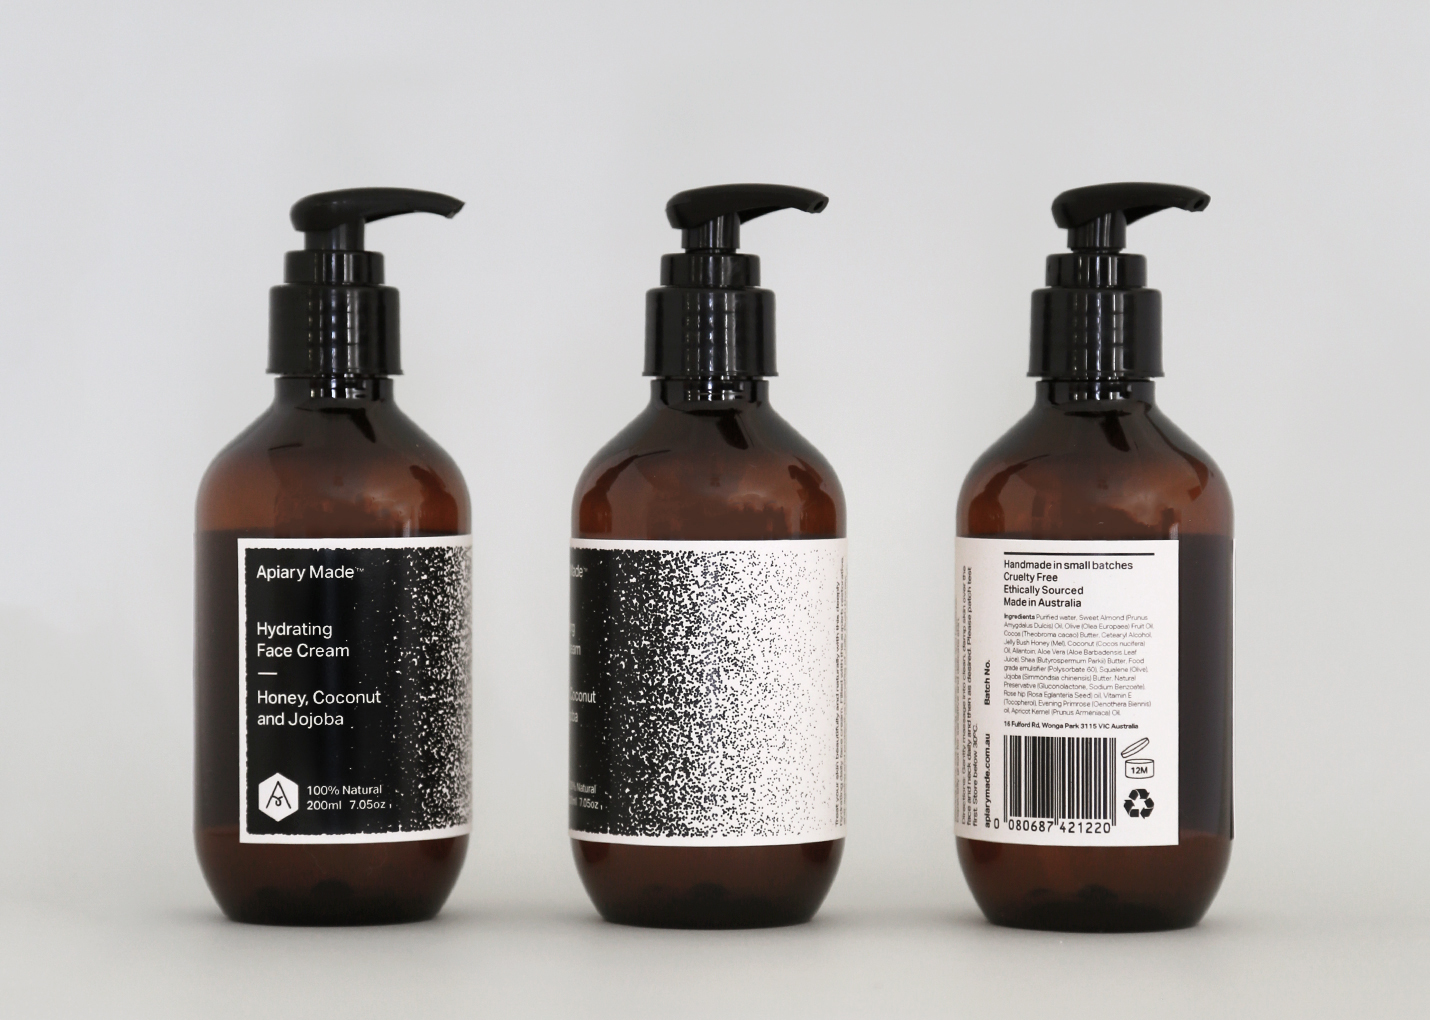 Ow To Design Label For Skin Product